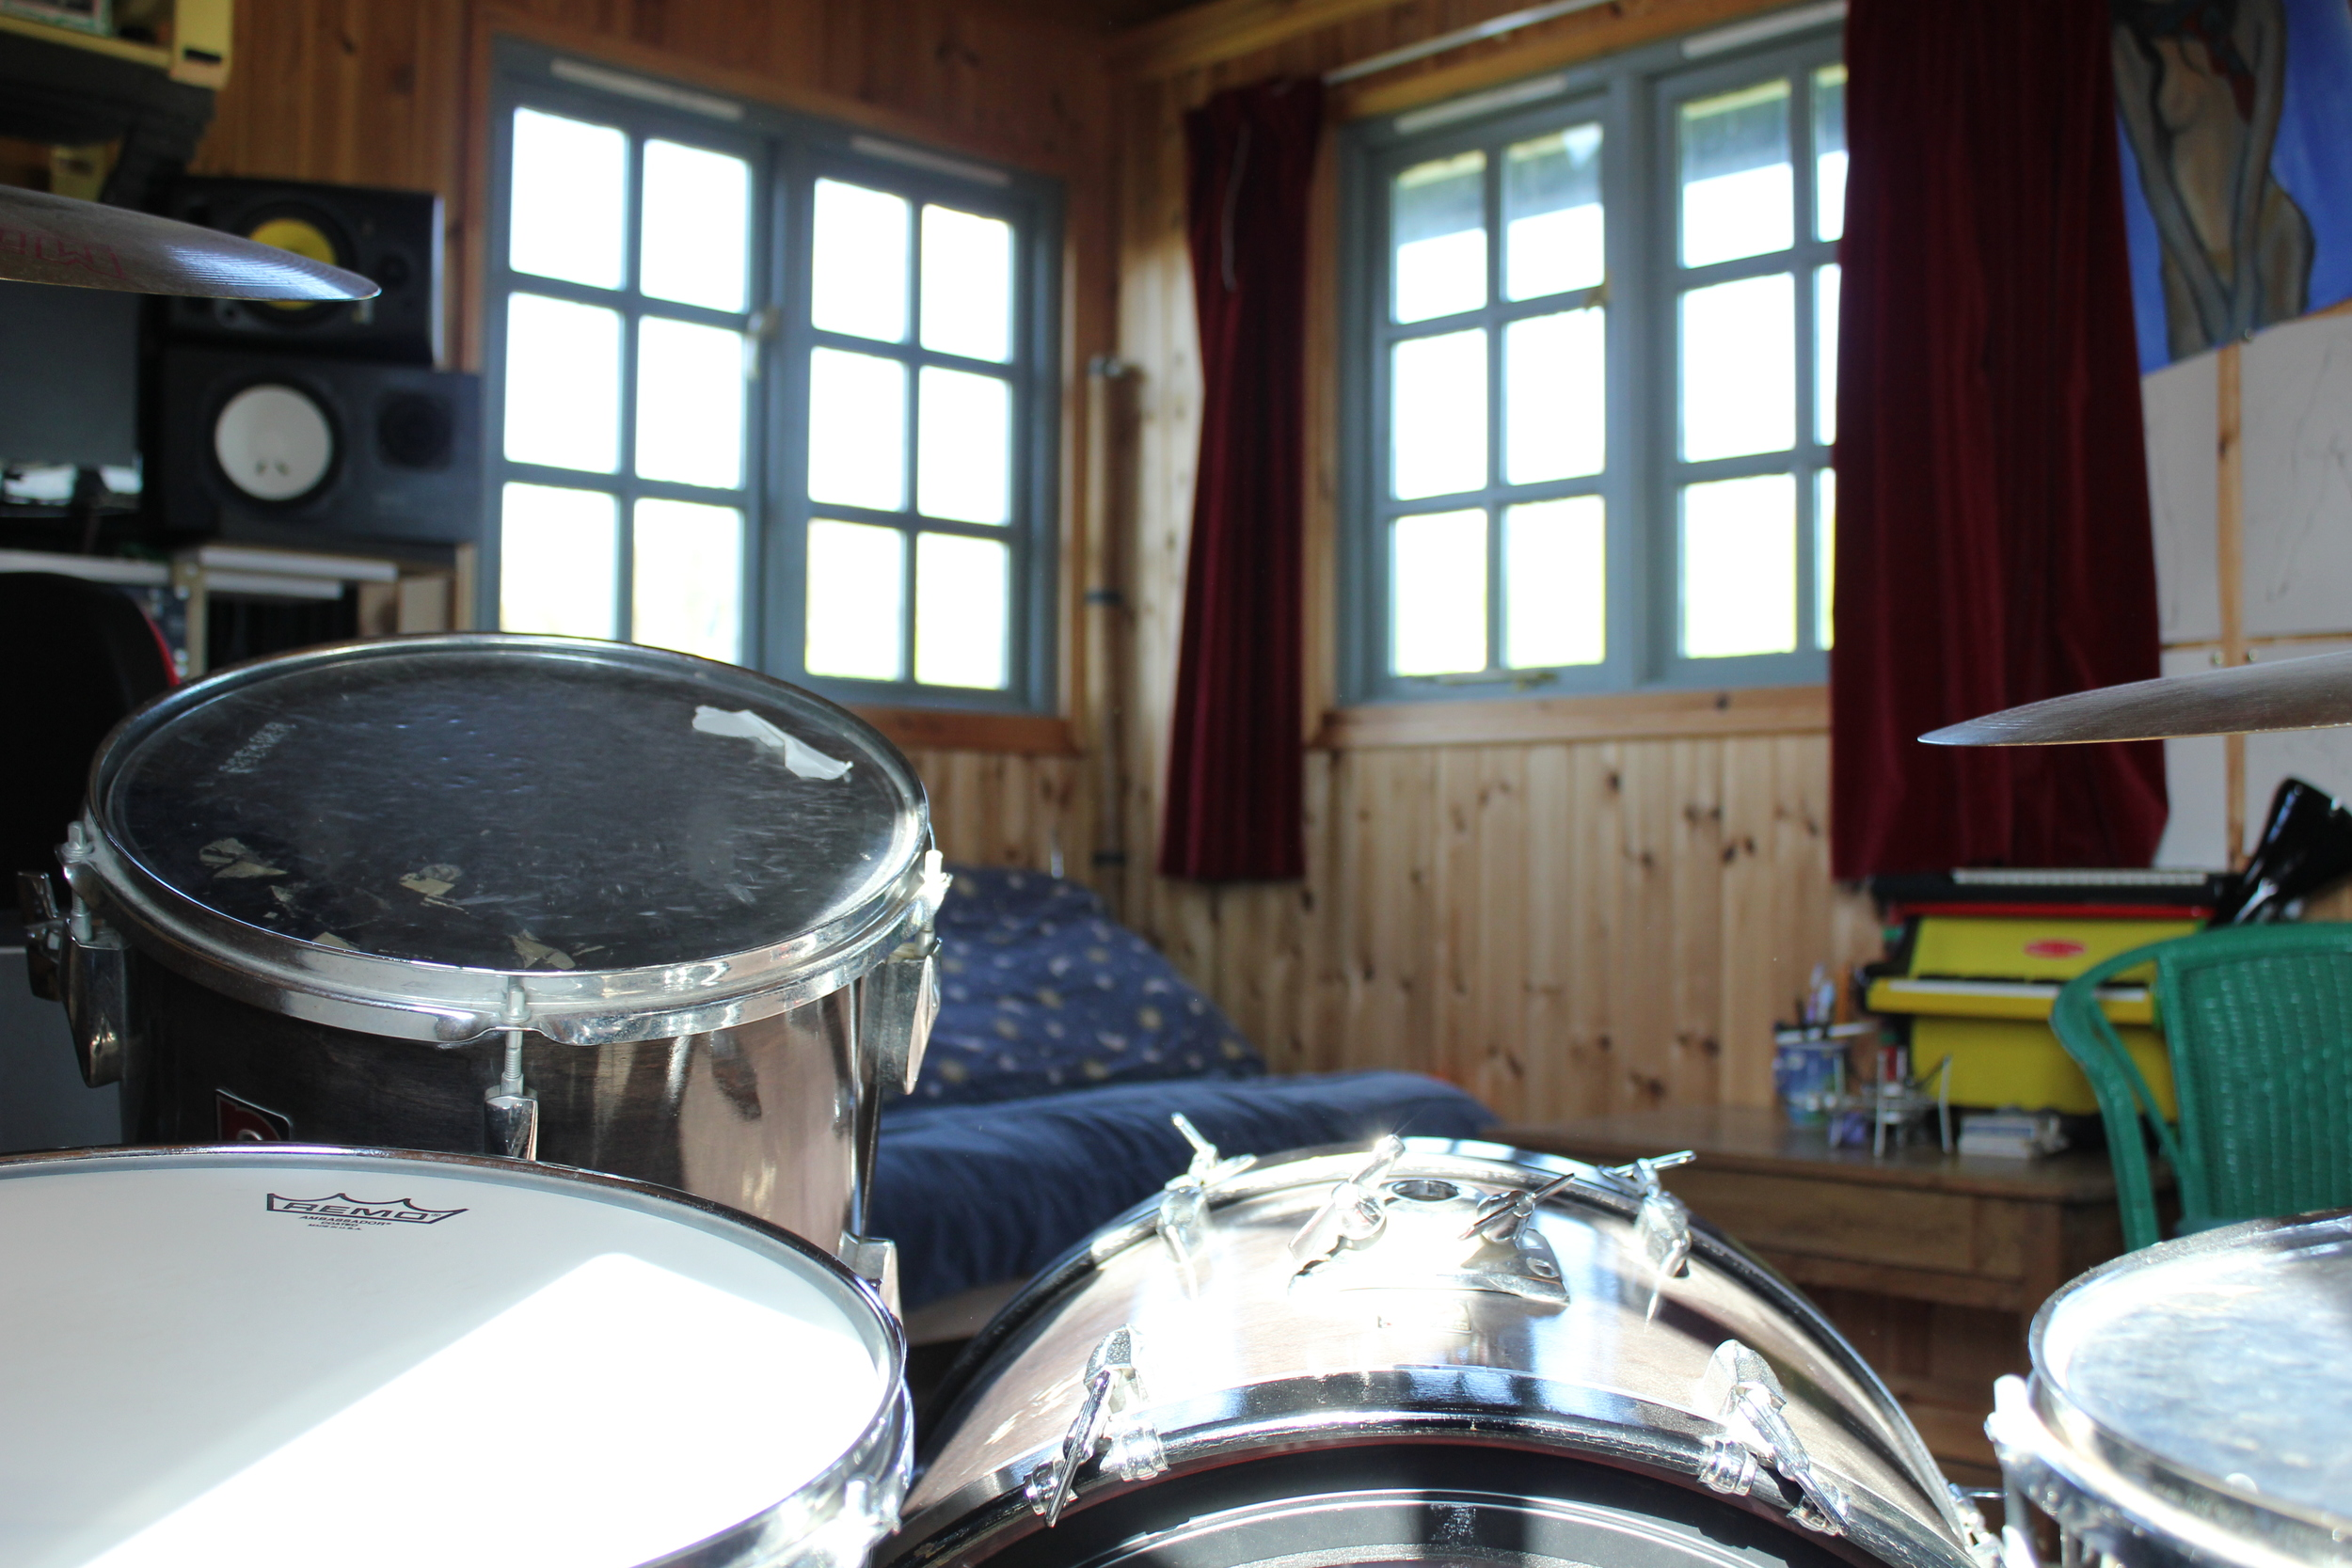 A drummer's eye view.